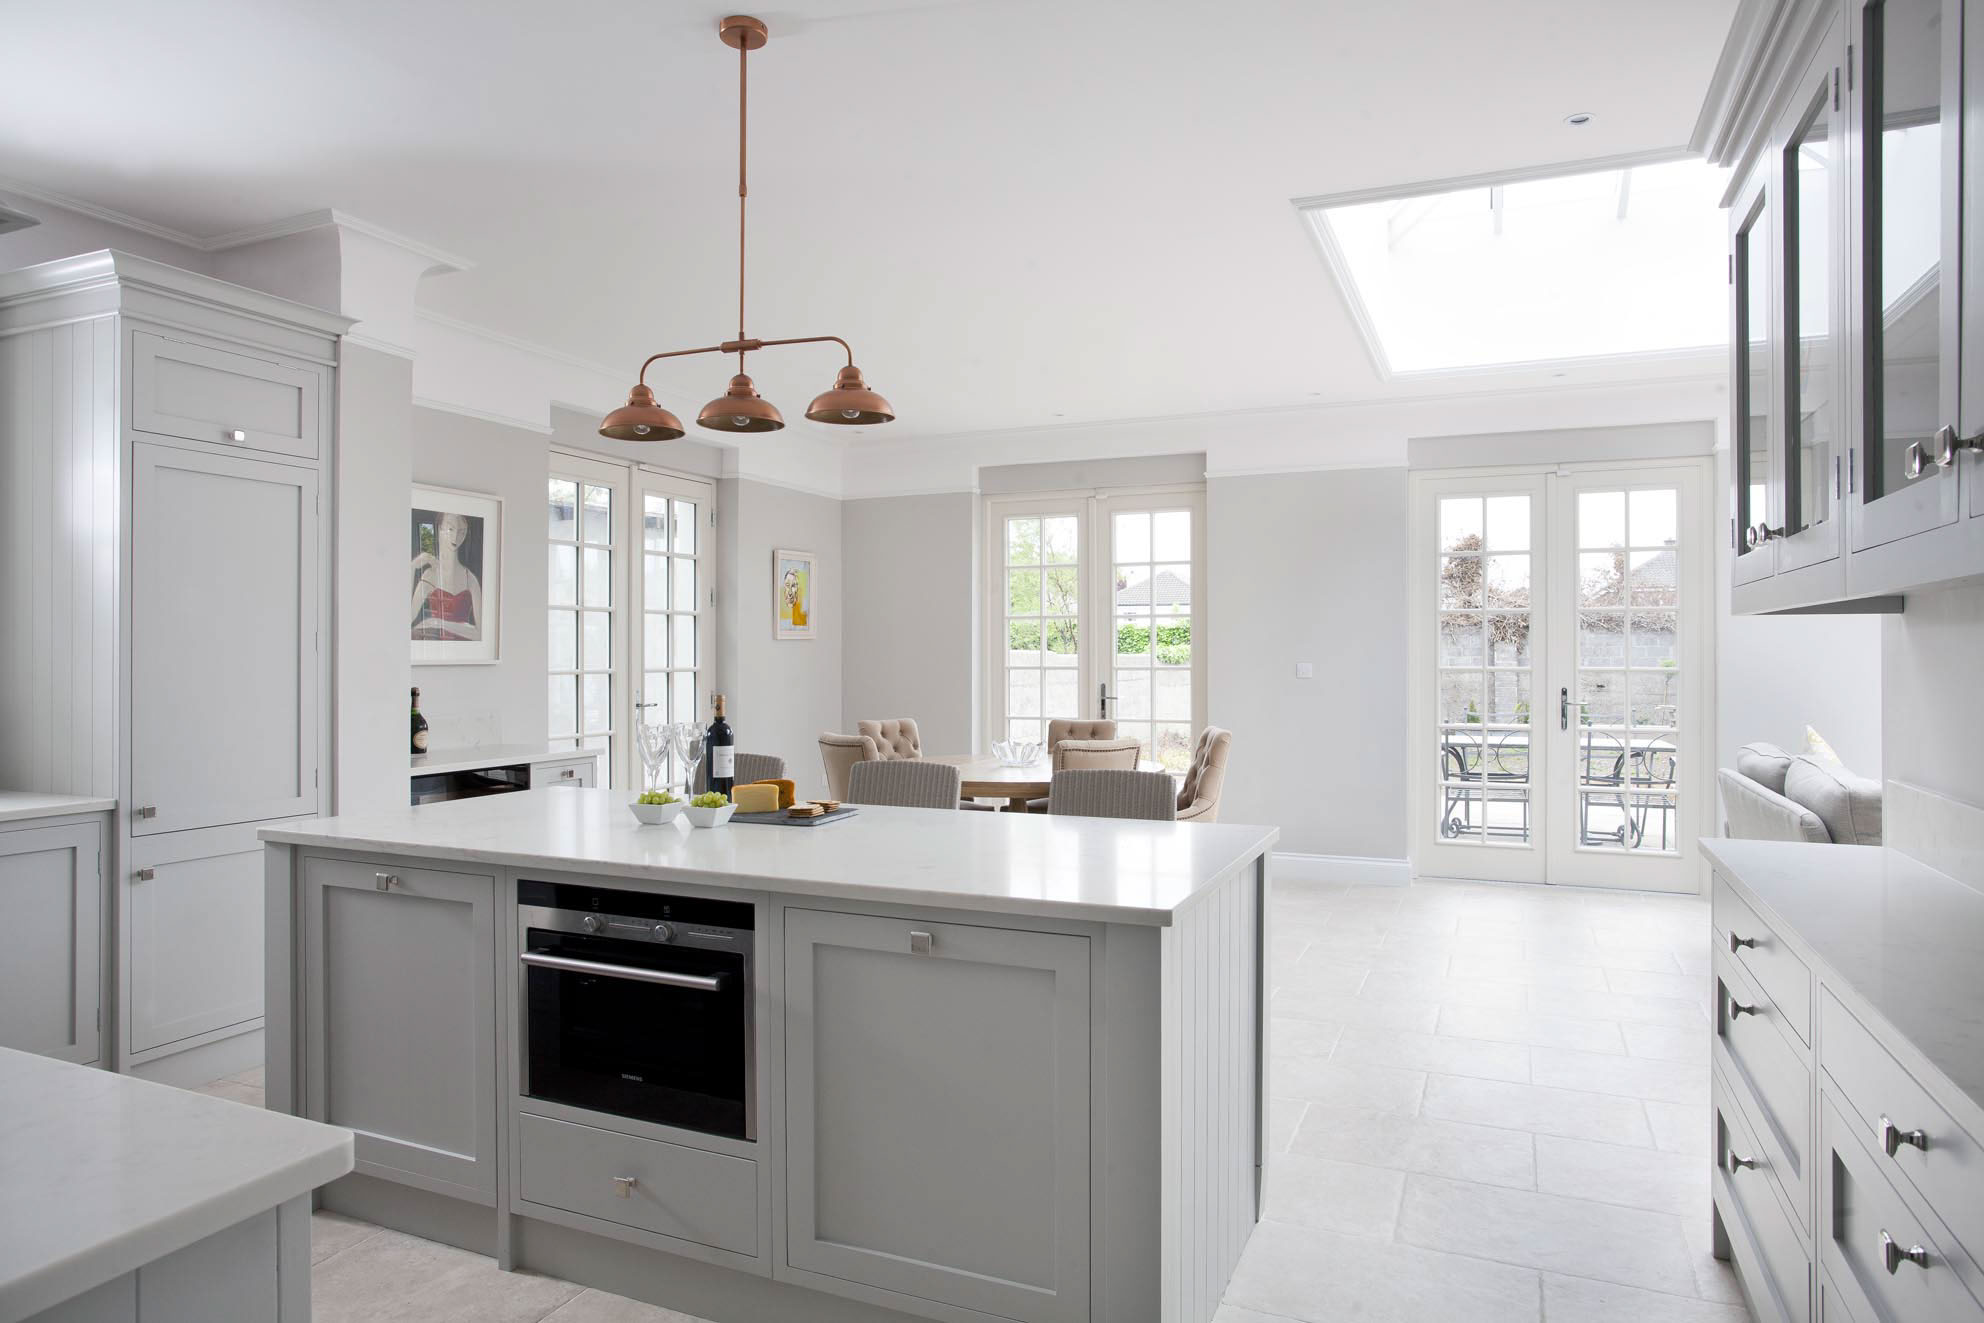 Handmade Kitchens Ireland Luxury Handpainted Kitchens In Dublin Belfast And Dungannon